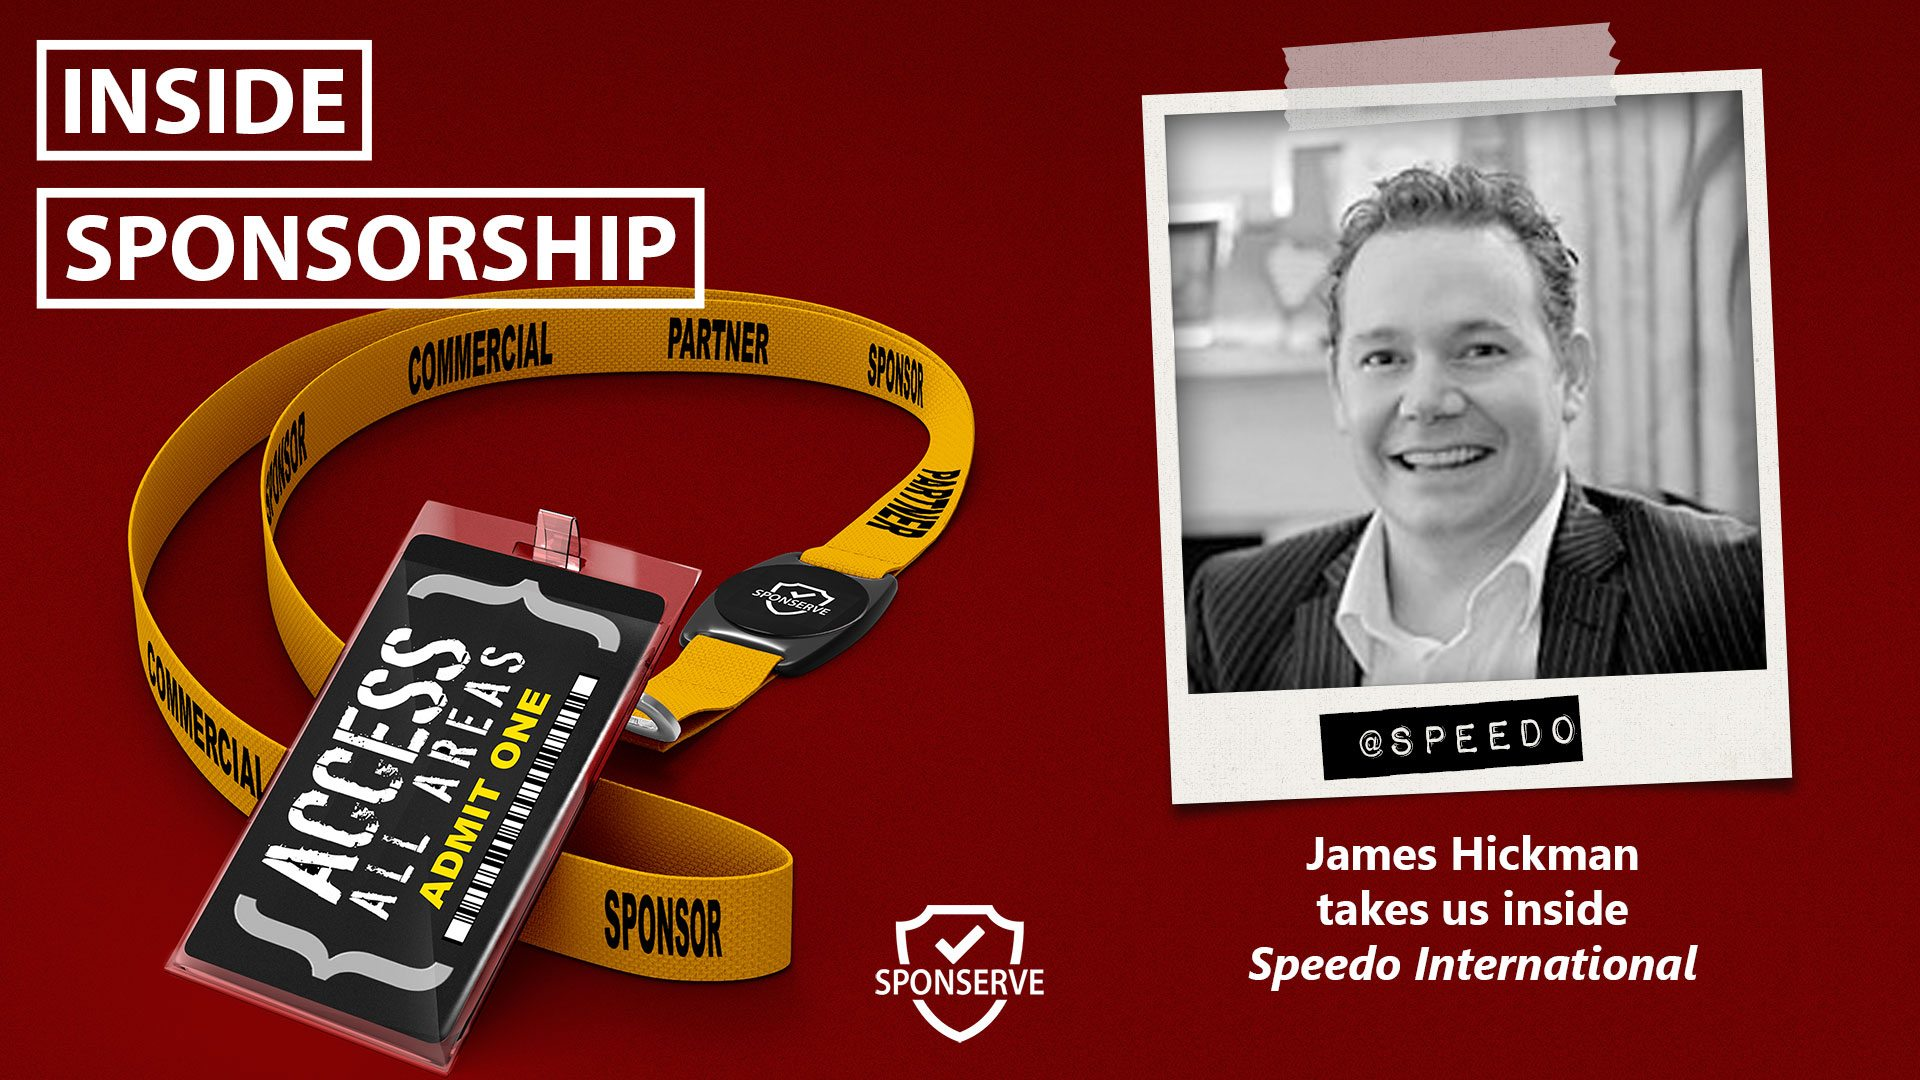 Inside Sponsorship - James Hickman - Speedo InternationalInside Sponsorship - James Hickman - Speedo International